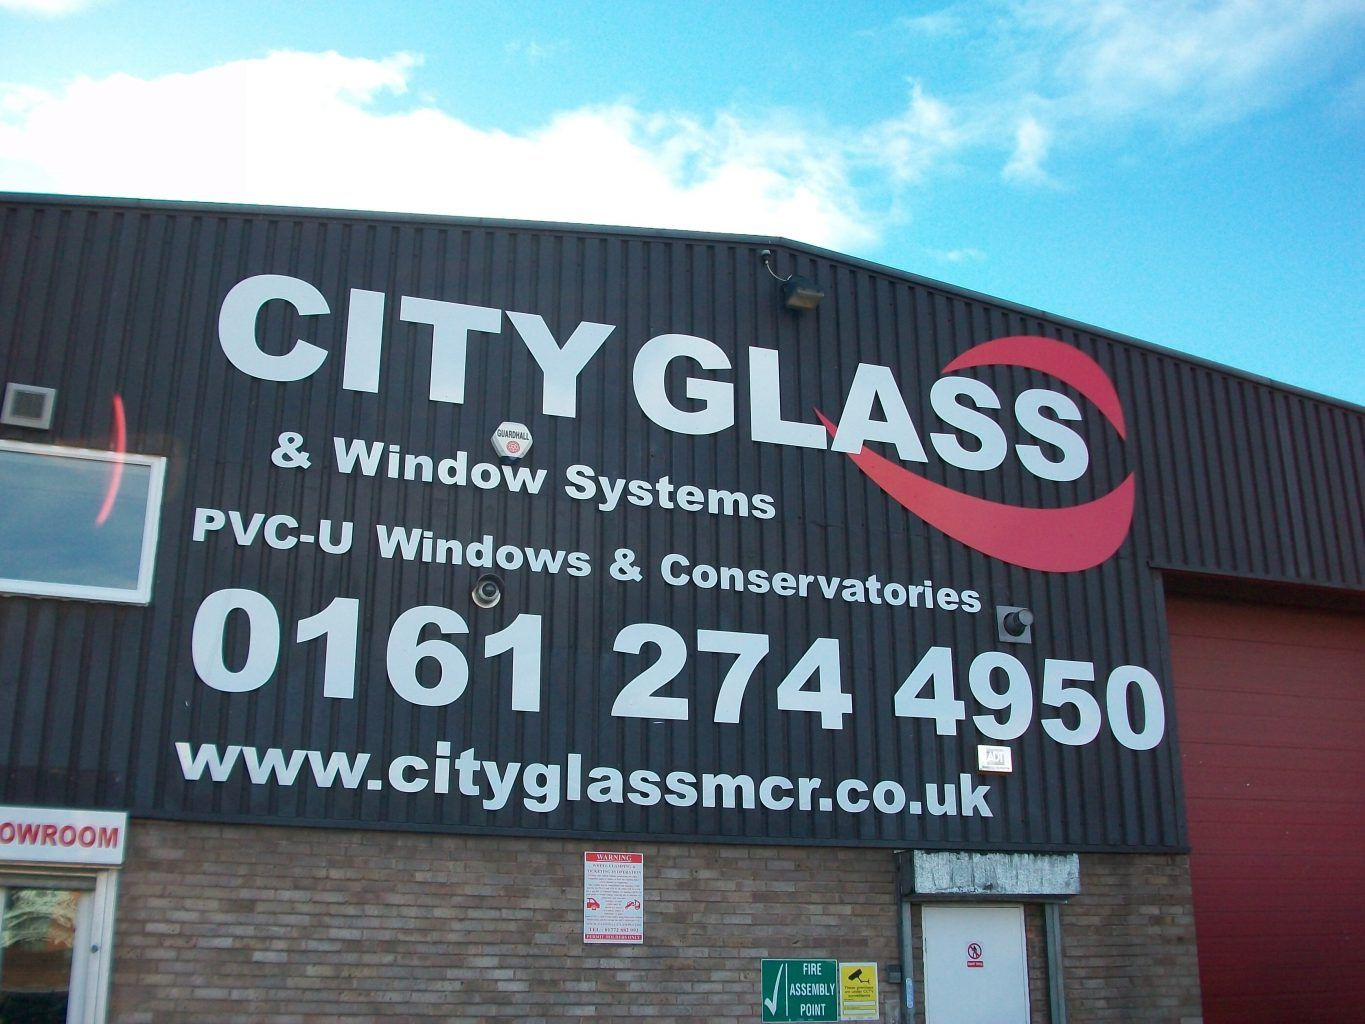 City Glass flat cut letters mounted to cladding